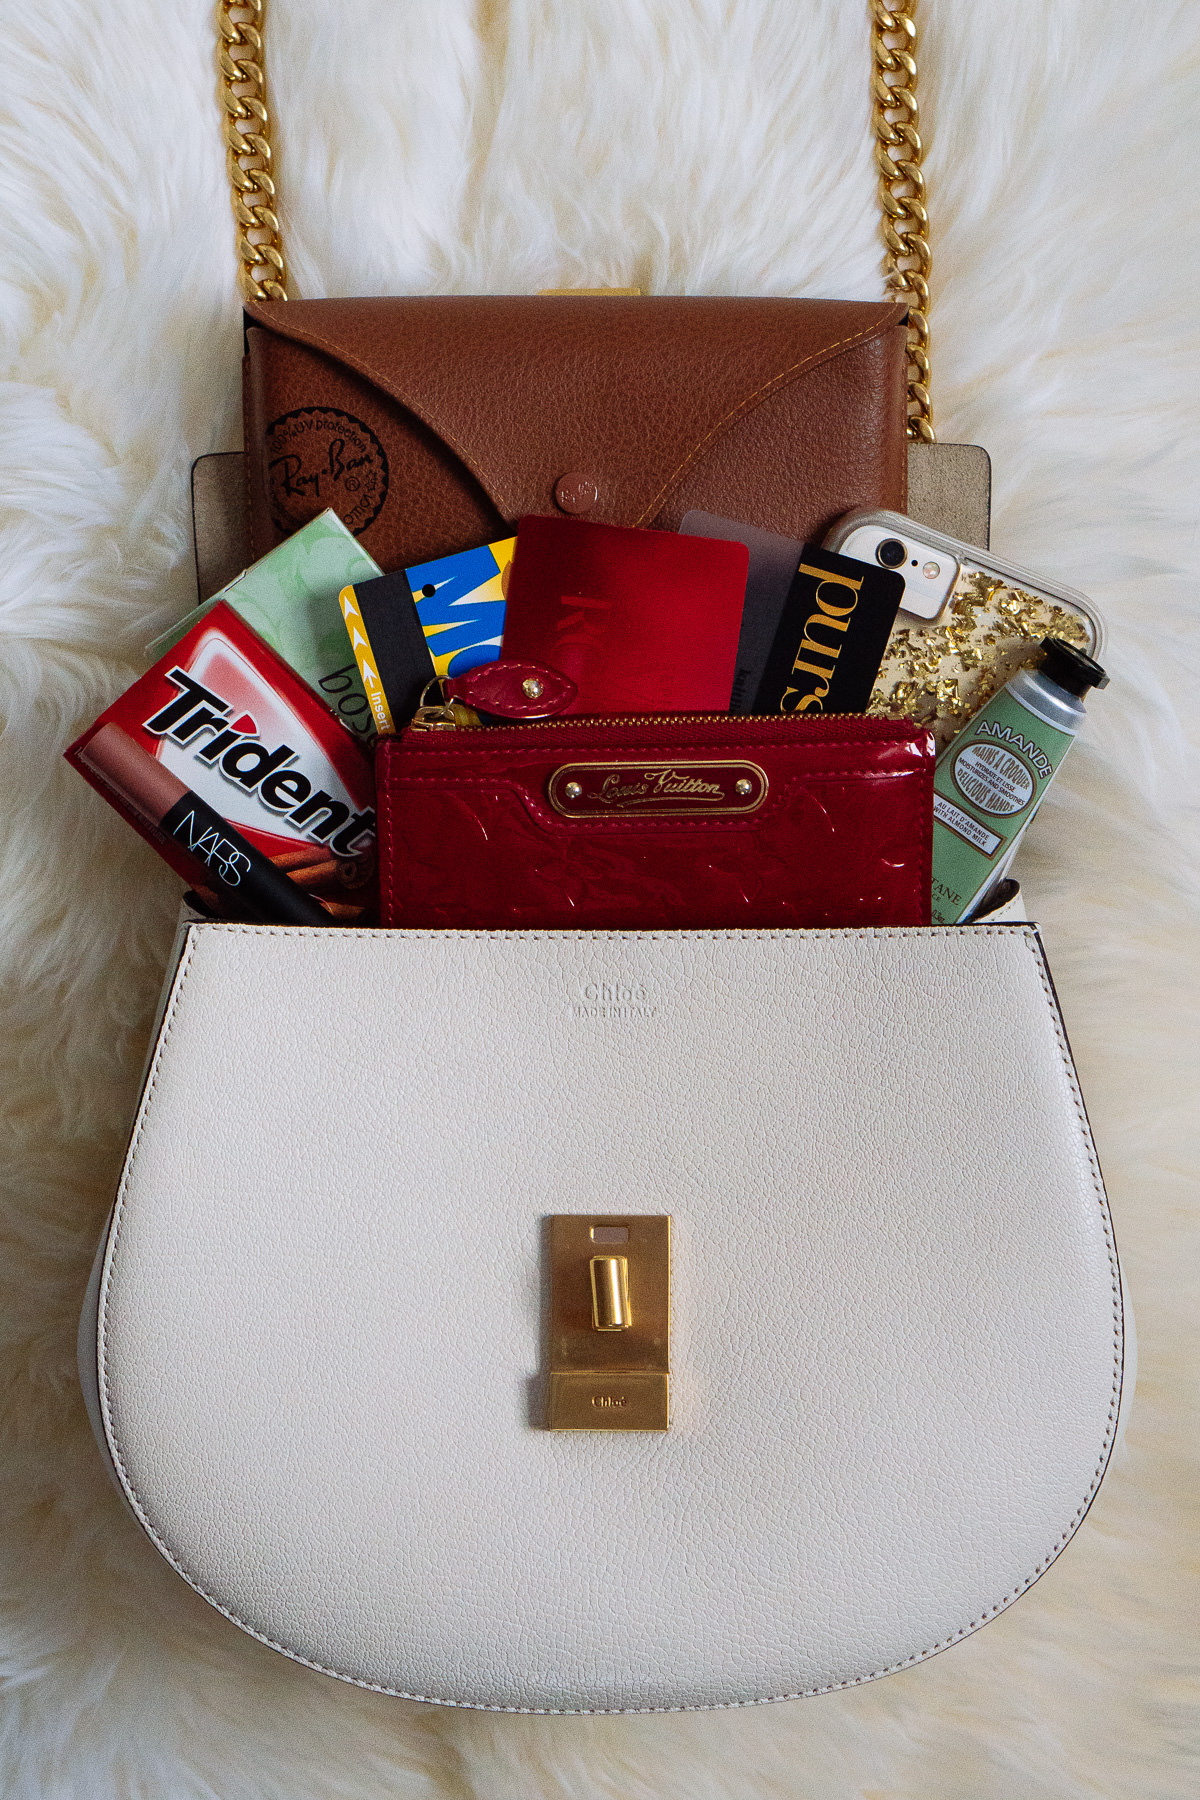 8186cf58 An In-Depth Review of Kaitlin's Newest Bag Buy: The Chloé ...